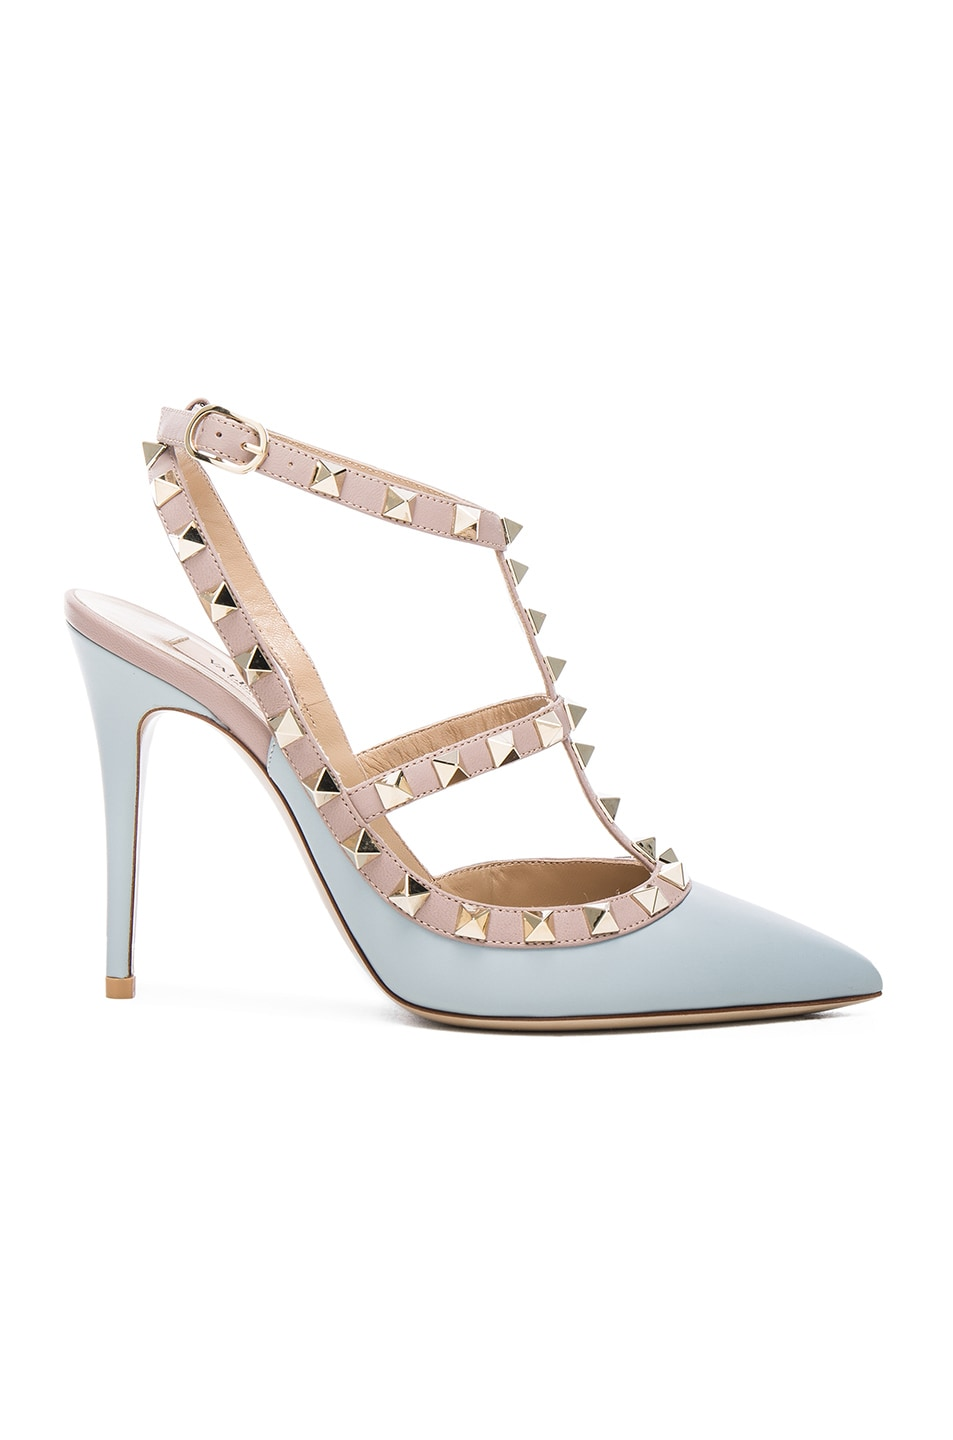 Image 1 of Valentino Rockstud Leather Slingbacks T.100 in Sky Sorbet